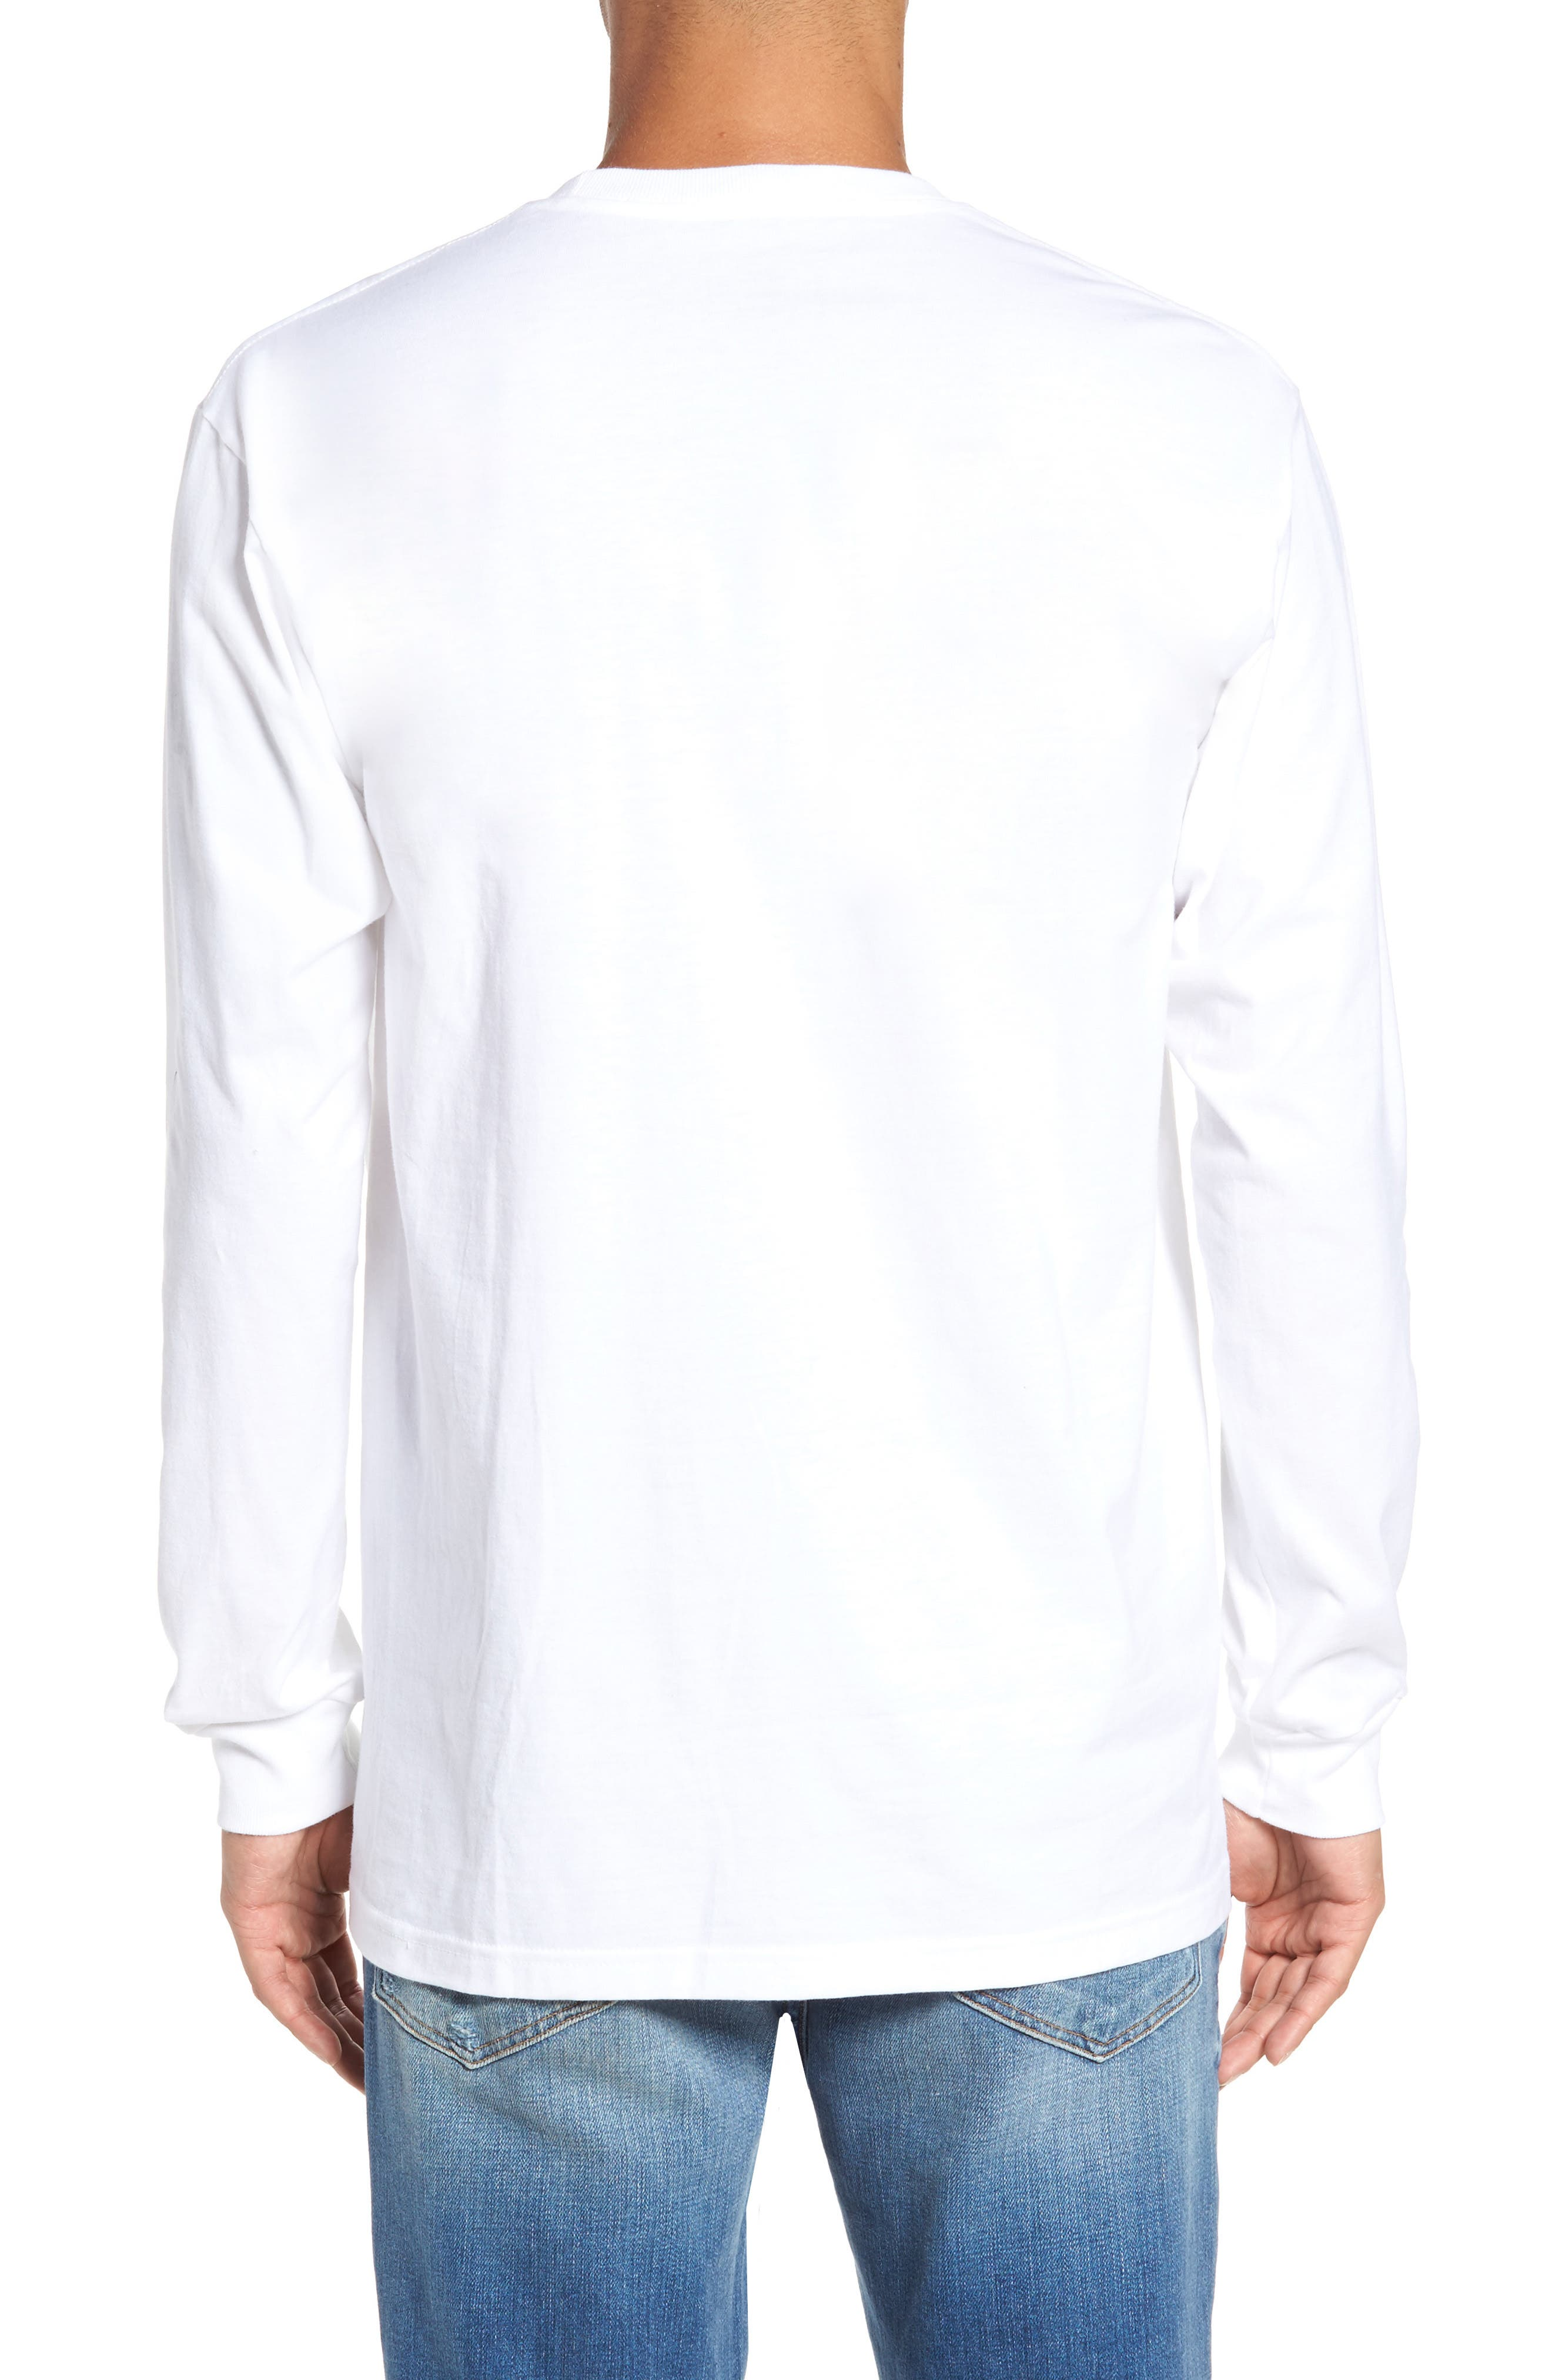 Alternate Image 2  - Vans Side Waze Graphic Long Sleeve T-Shirt